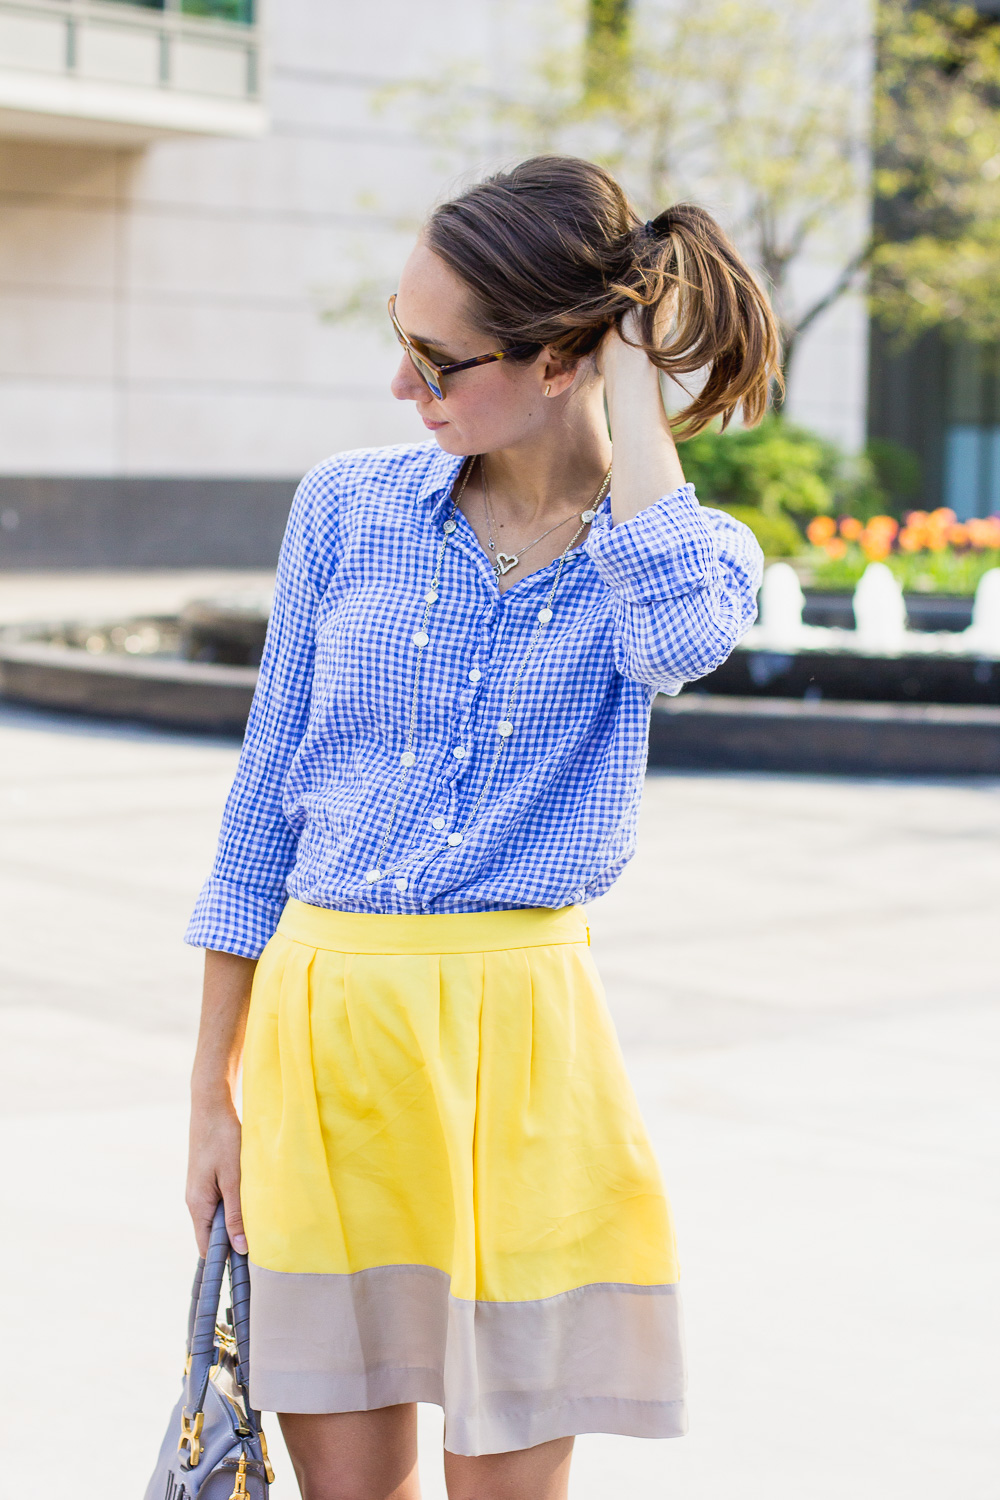 gingham shirt & a yellow skirt @thefoxandshe